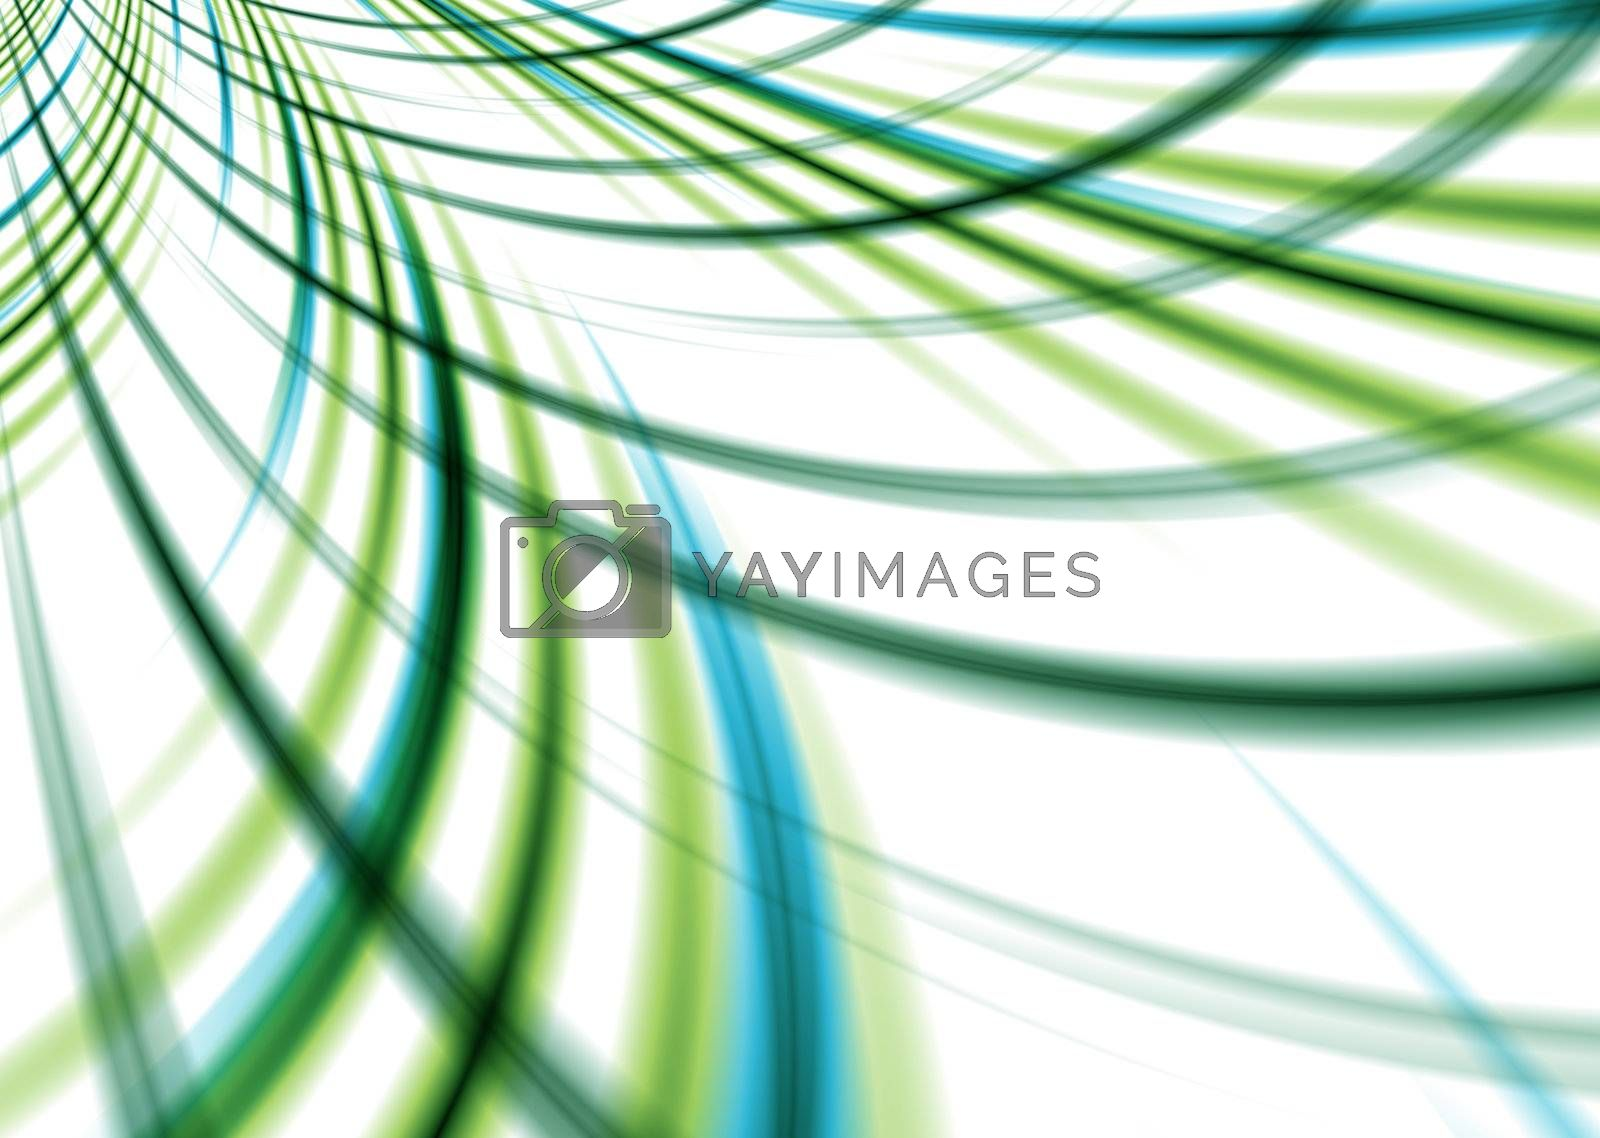 Abstract woven background with intersecting lines in green and blue